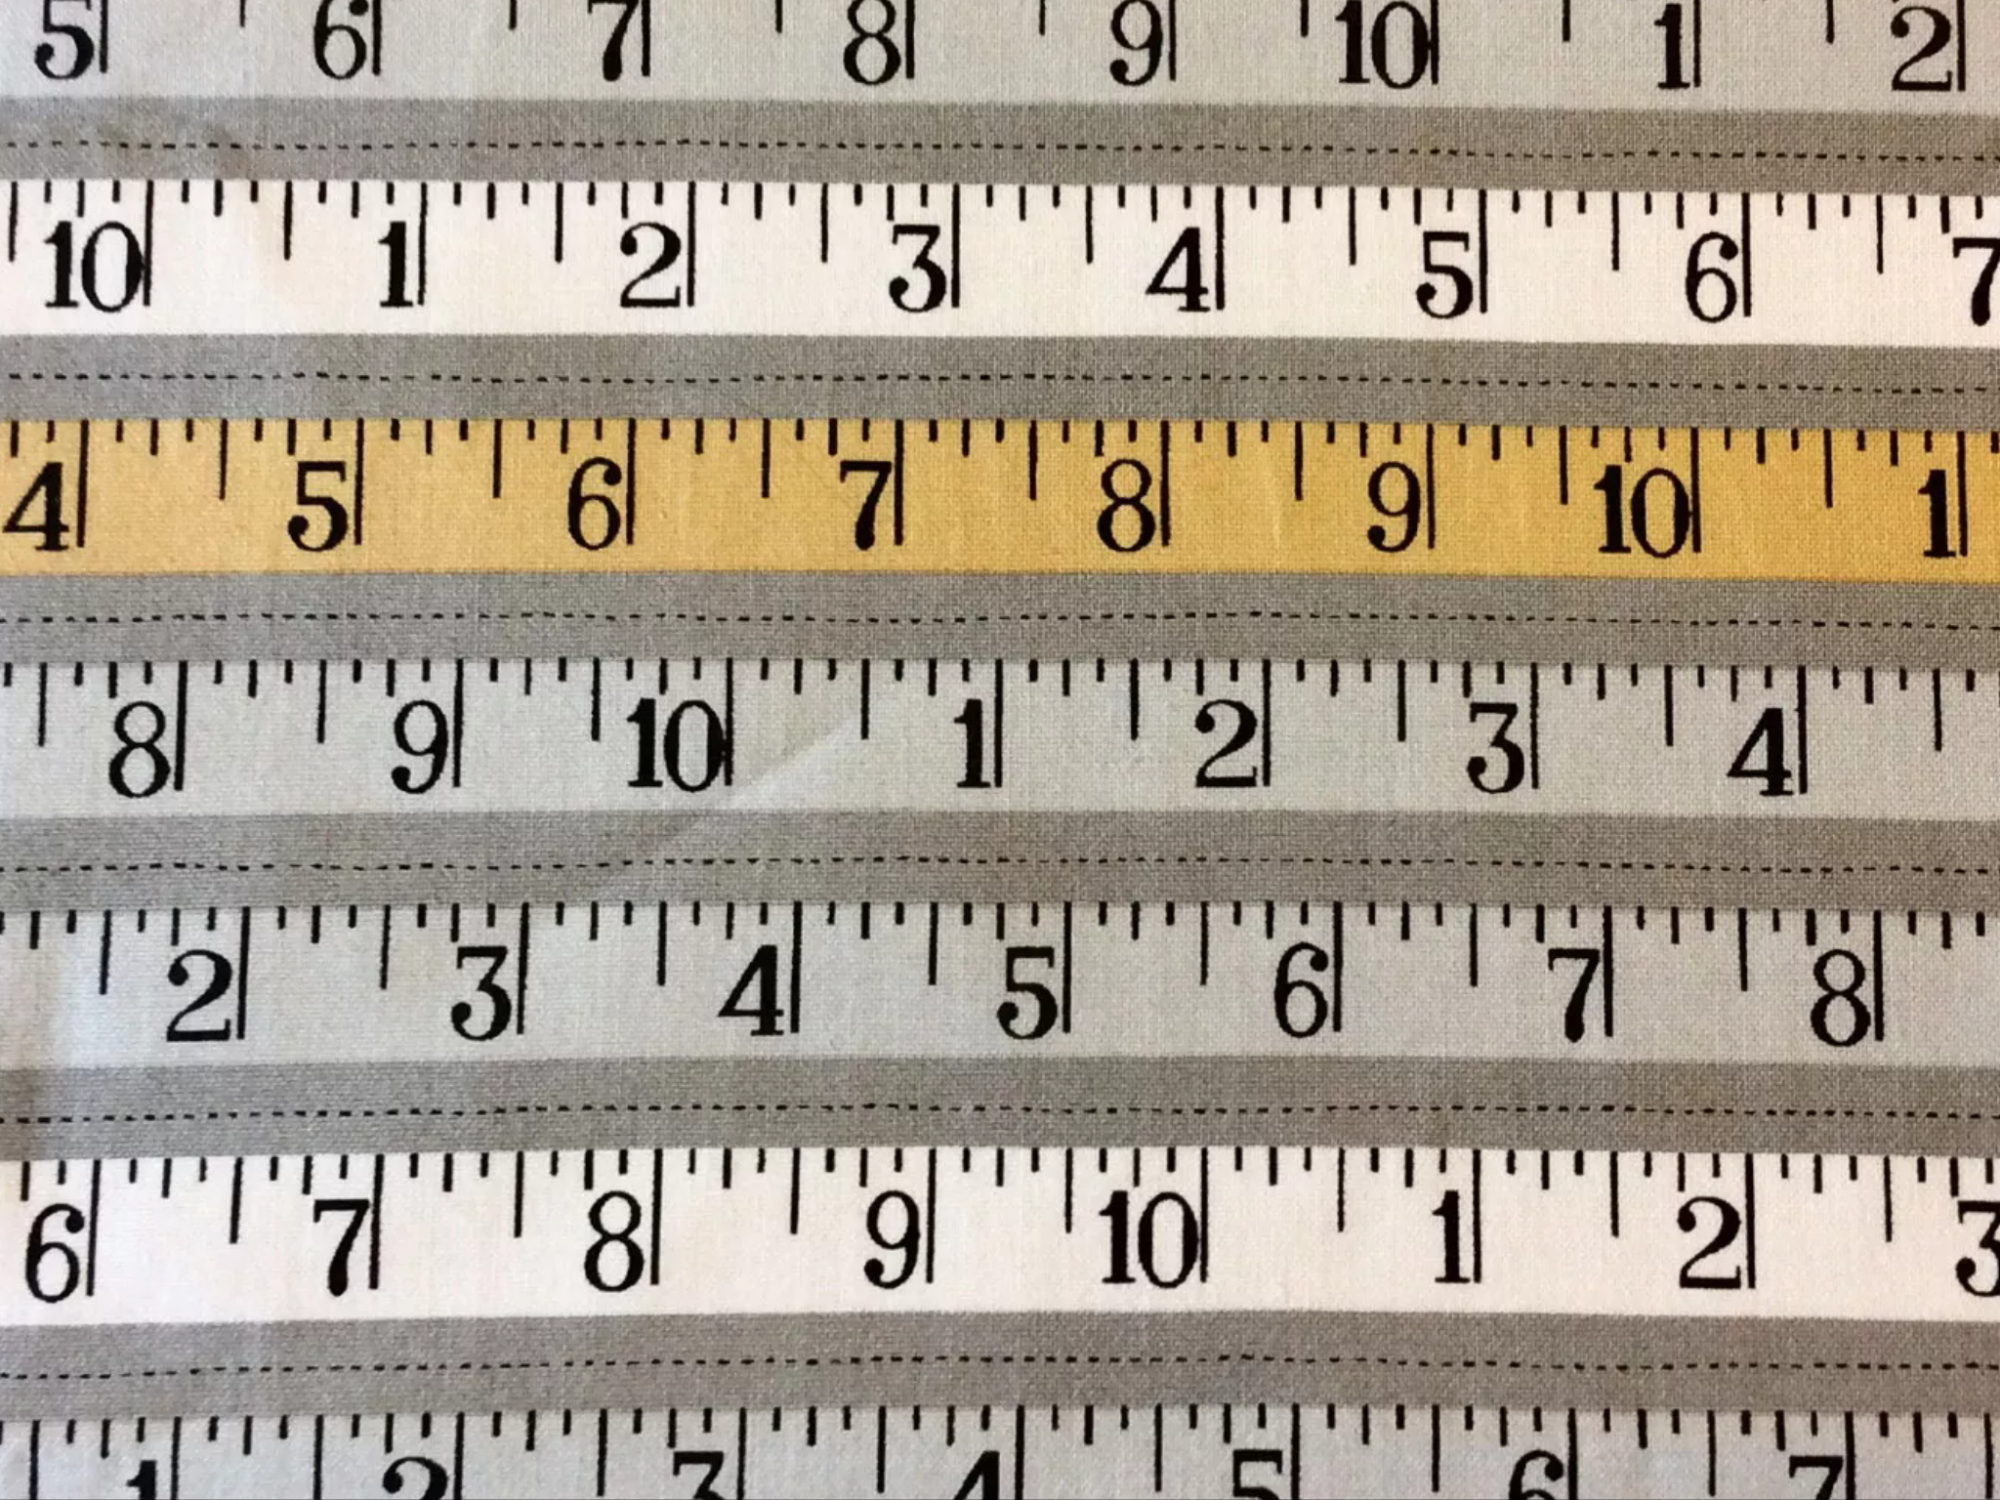 MD312 Metric Rulers Math School Yard Stick Numbers Sewing Cotton Quilt Fabric